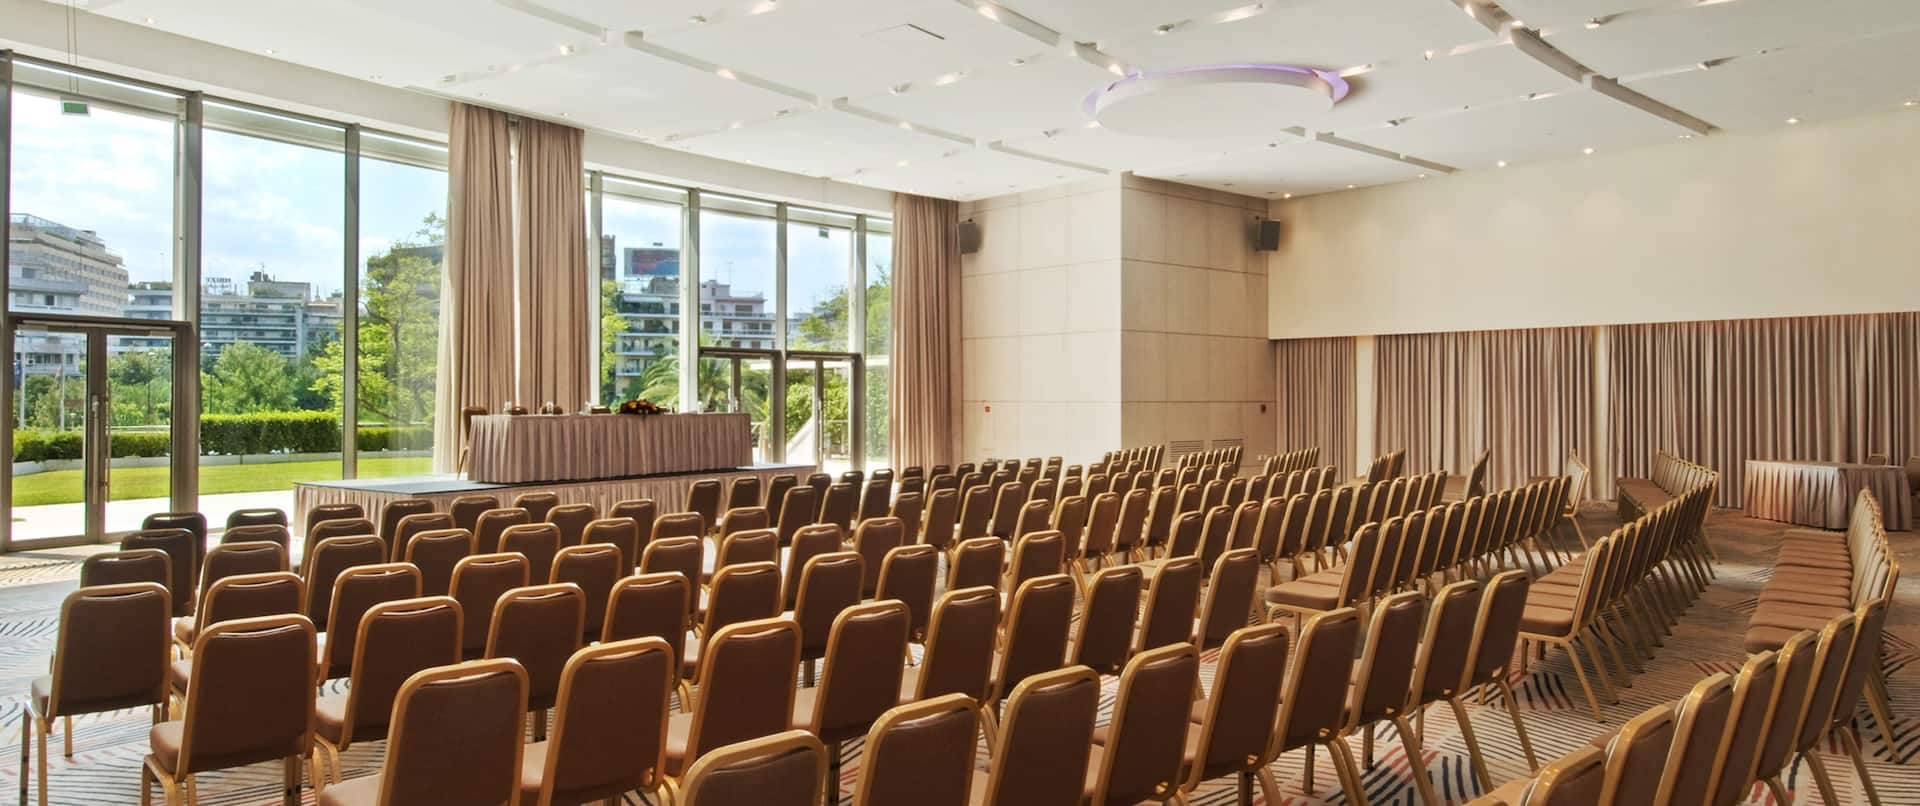 Meeting Room in Theater Setup